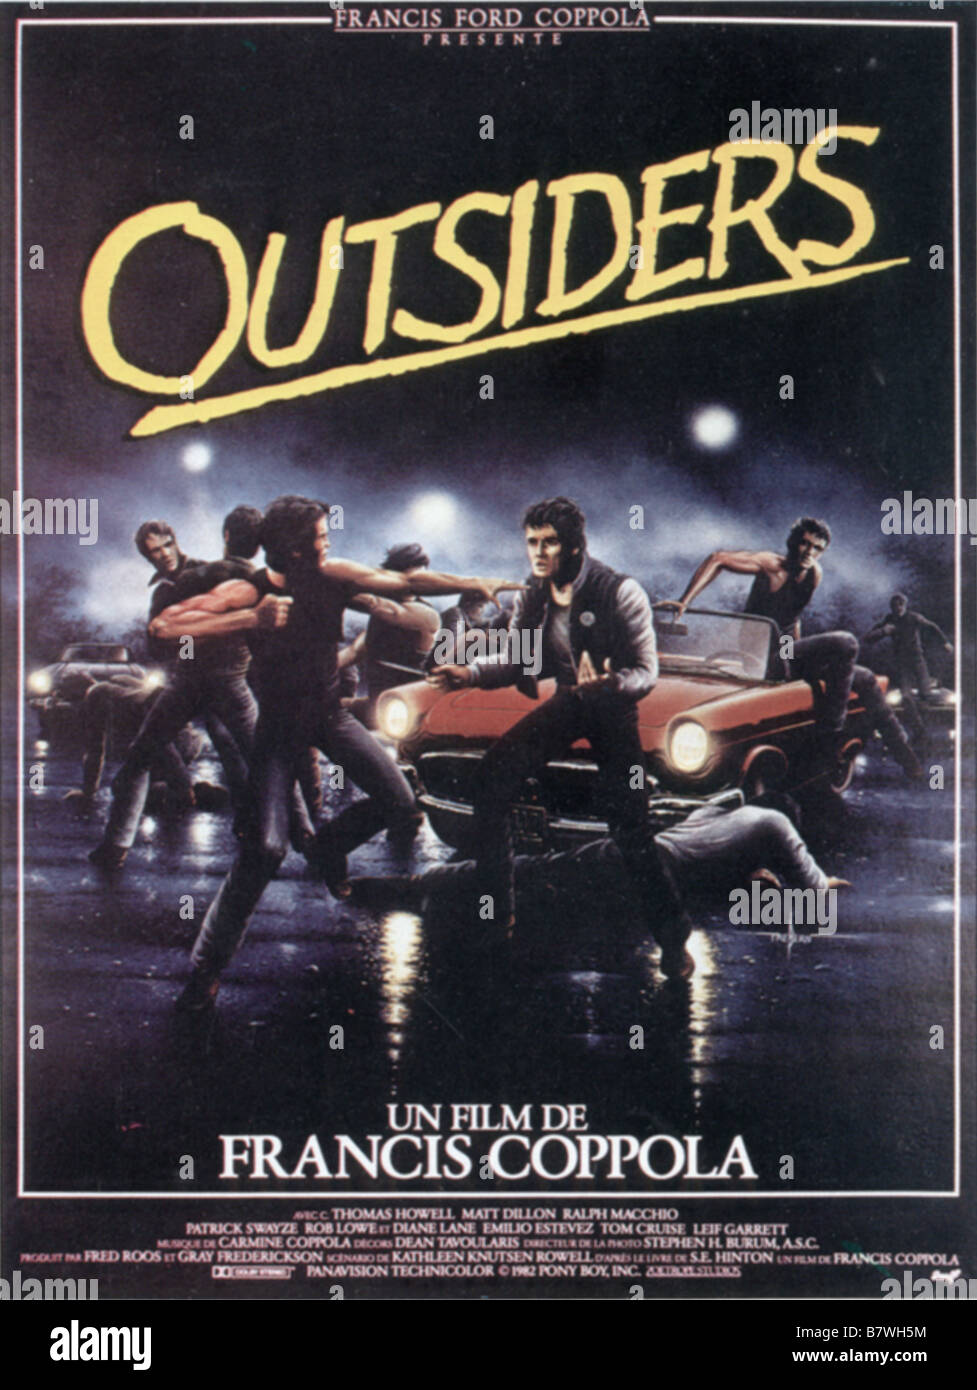 the outsiders movie stock photos the outsiders movie stock images